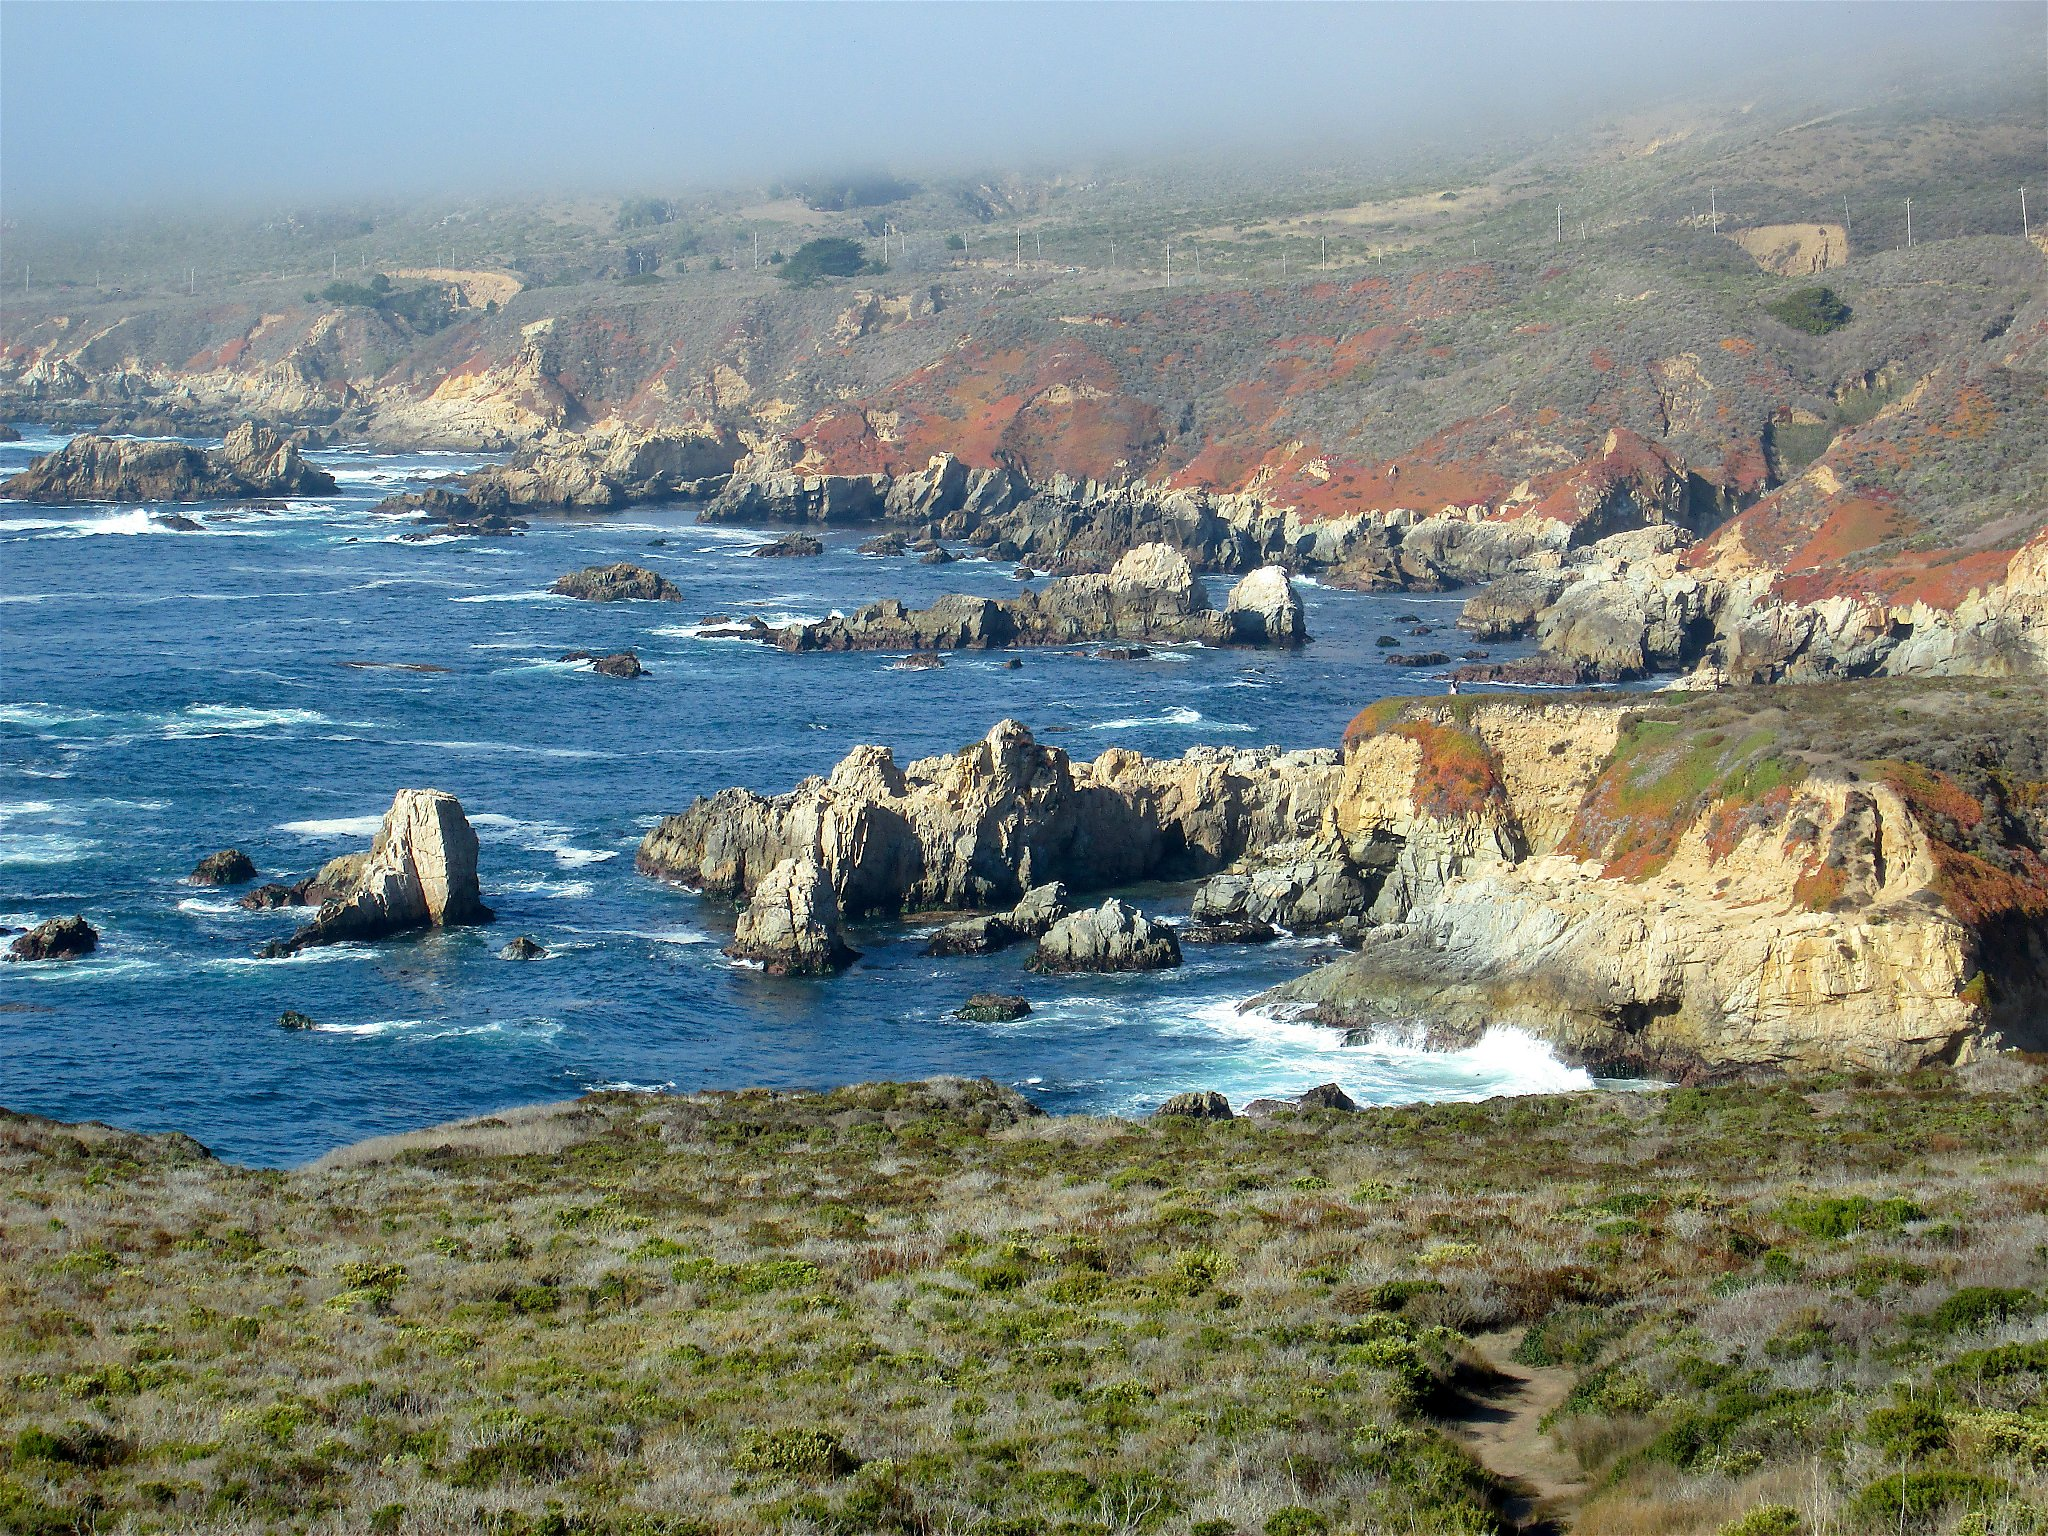 monterey county Browse through businesses for sale in monterey county, ca on bizbuysell find a business opportunity in monterey county to meet your needs, from absentee owner businesses to established high cash flow businesses.